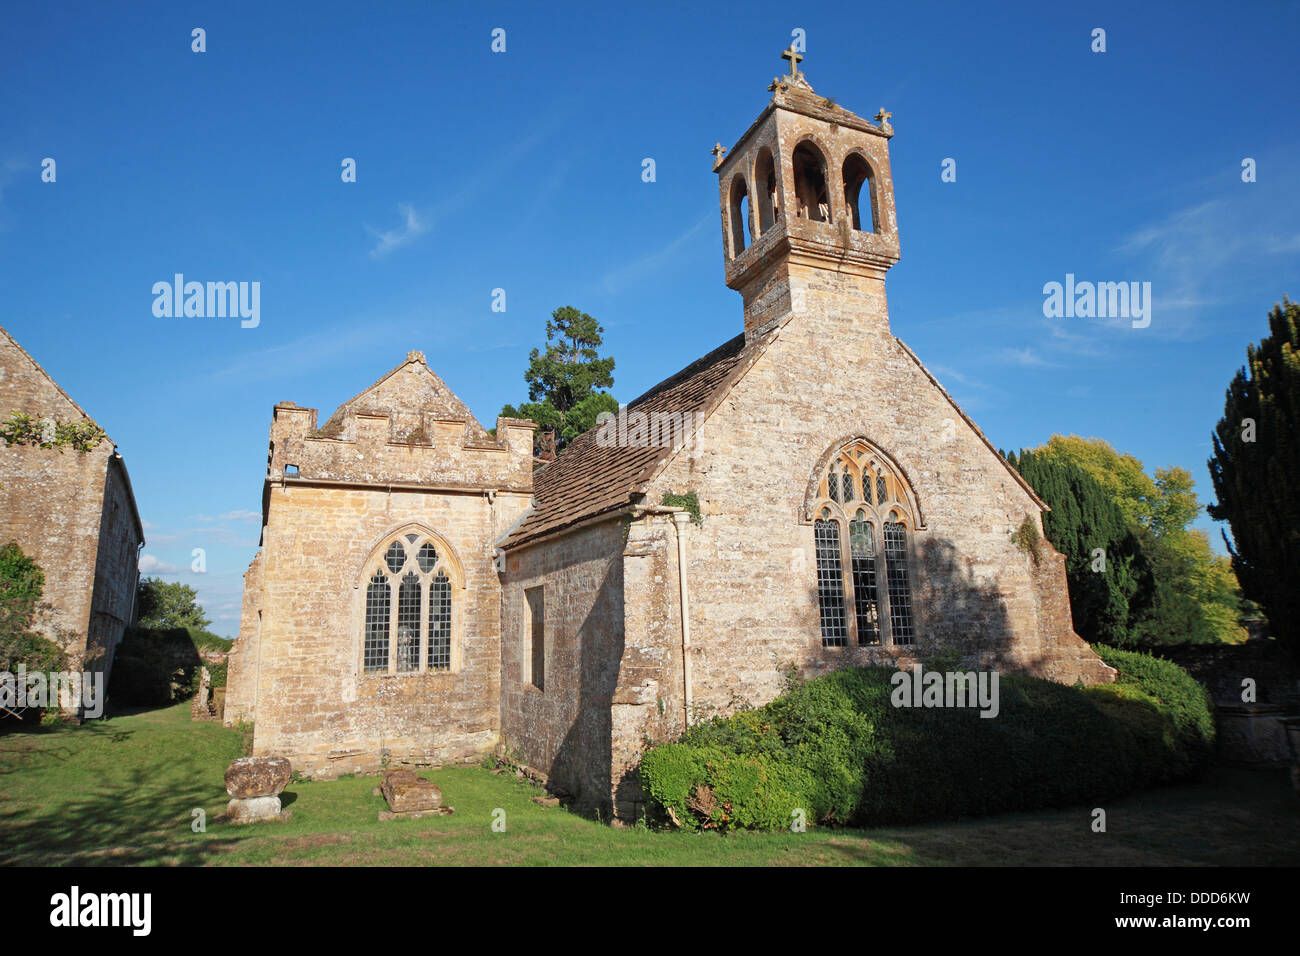 St Andrews Church, Brympton D'Evercy, Odcombe, Near Yeovil, Somerset, South West England, - Stock Image